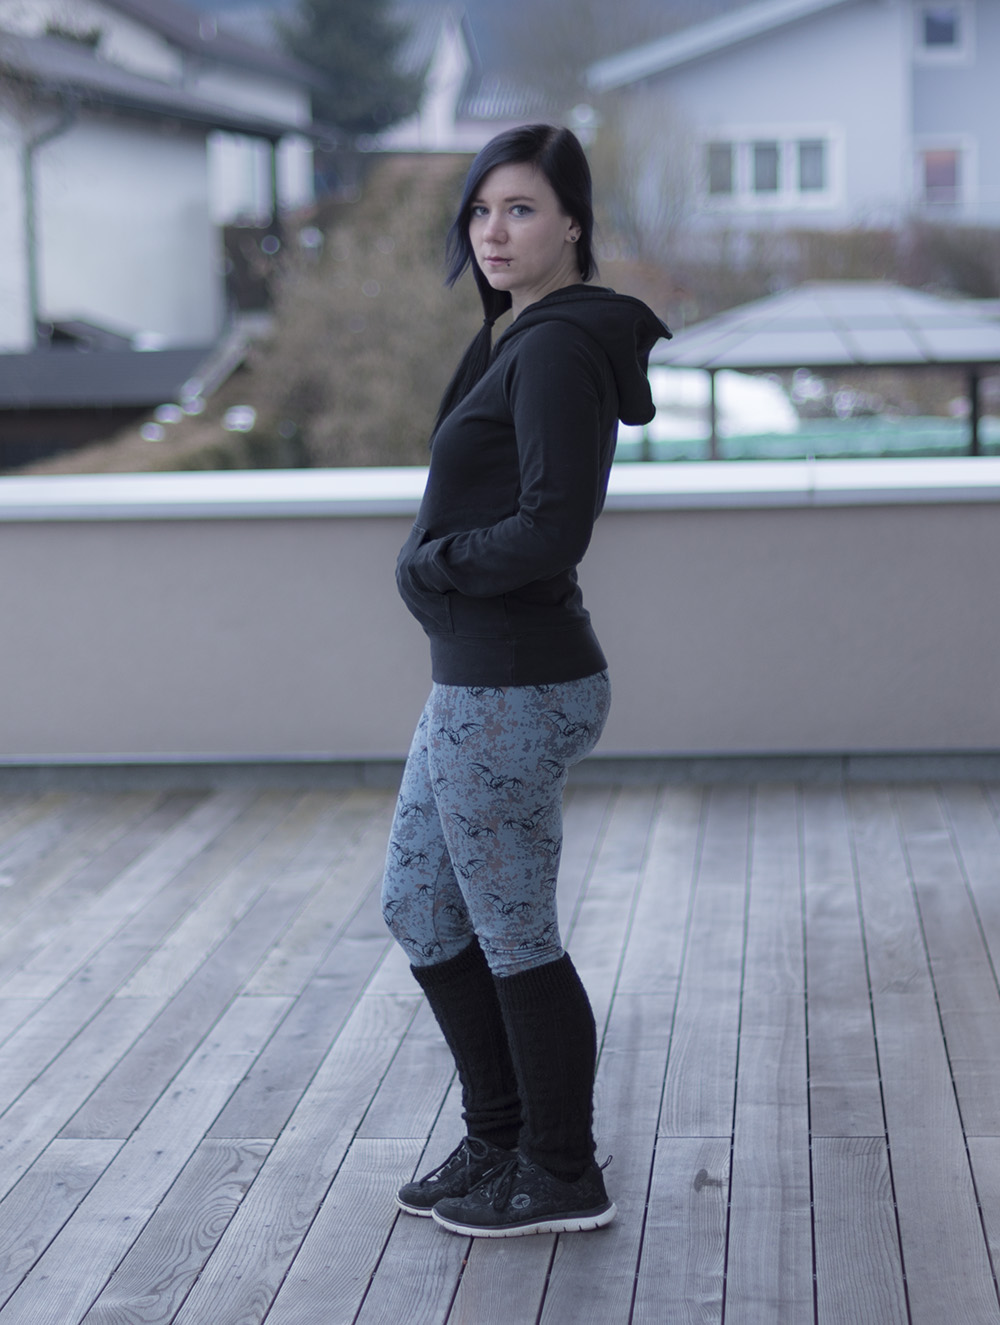 sewing penny leggings sinclair patterns style inspiration ideas comfy hoodie legwarmers winter cold pullover